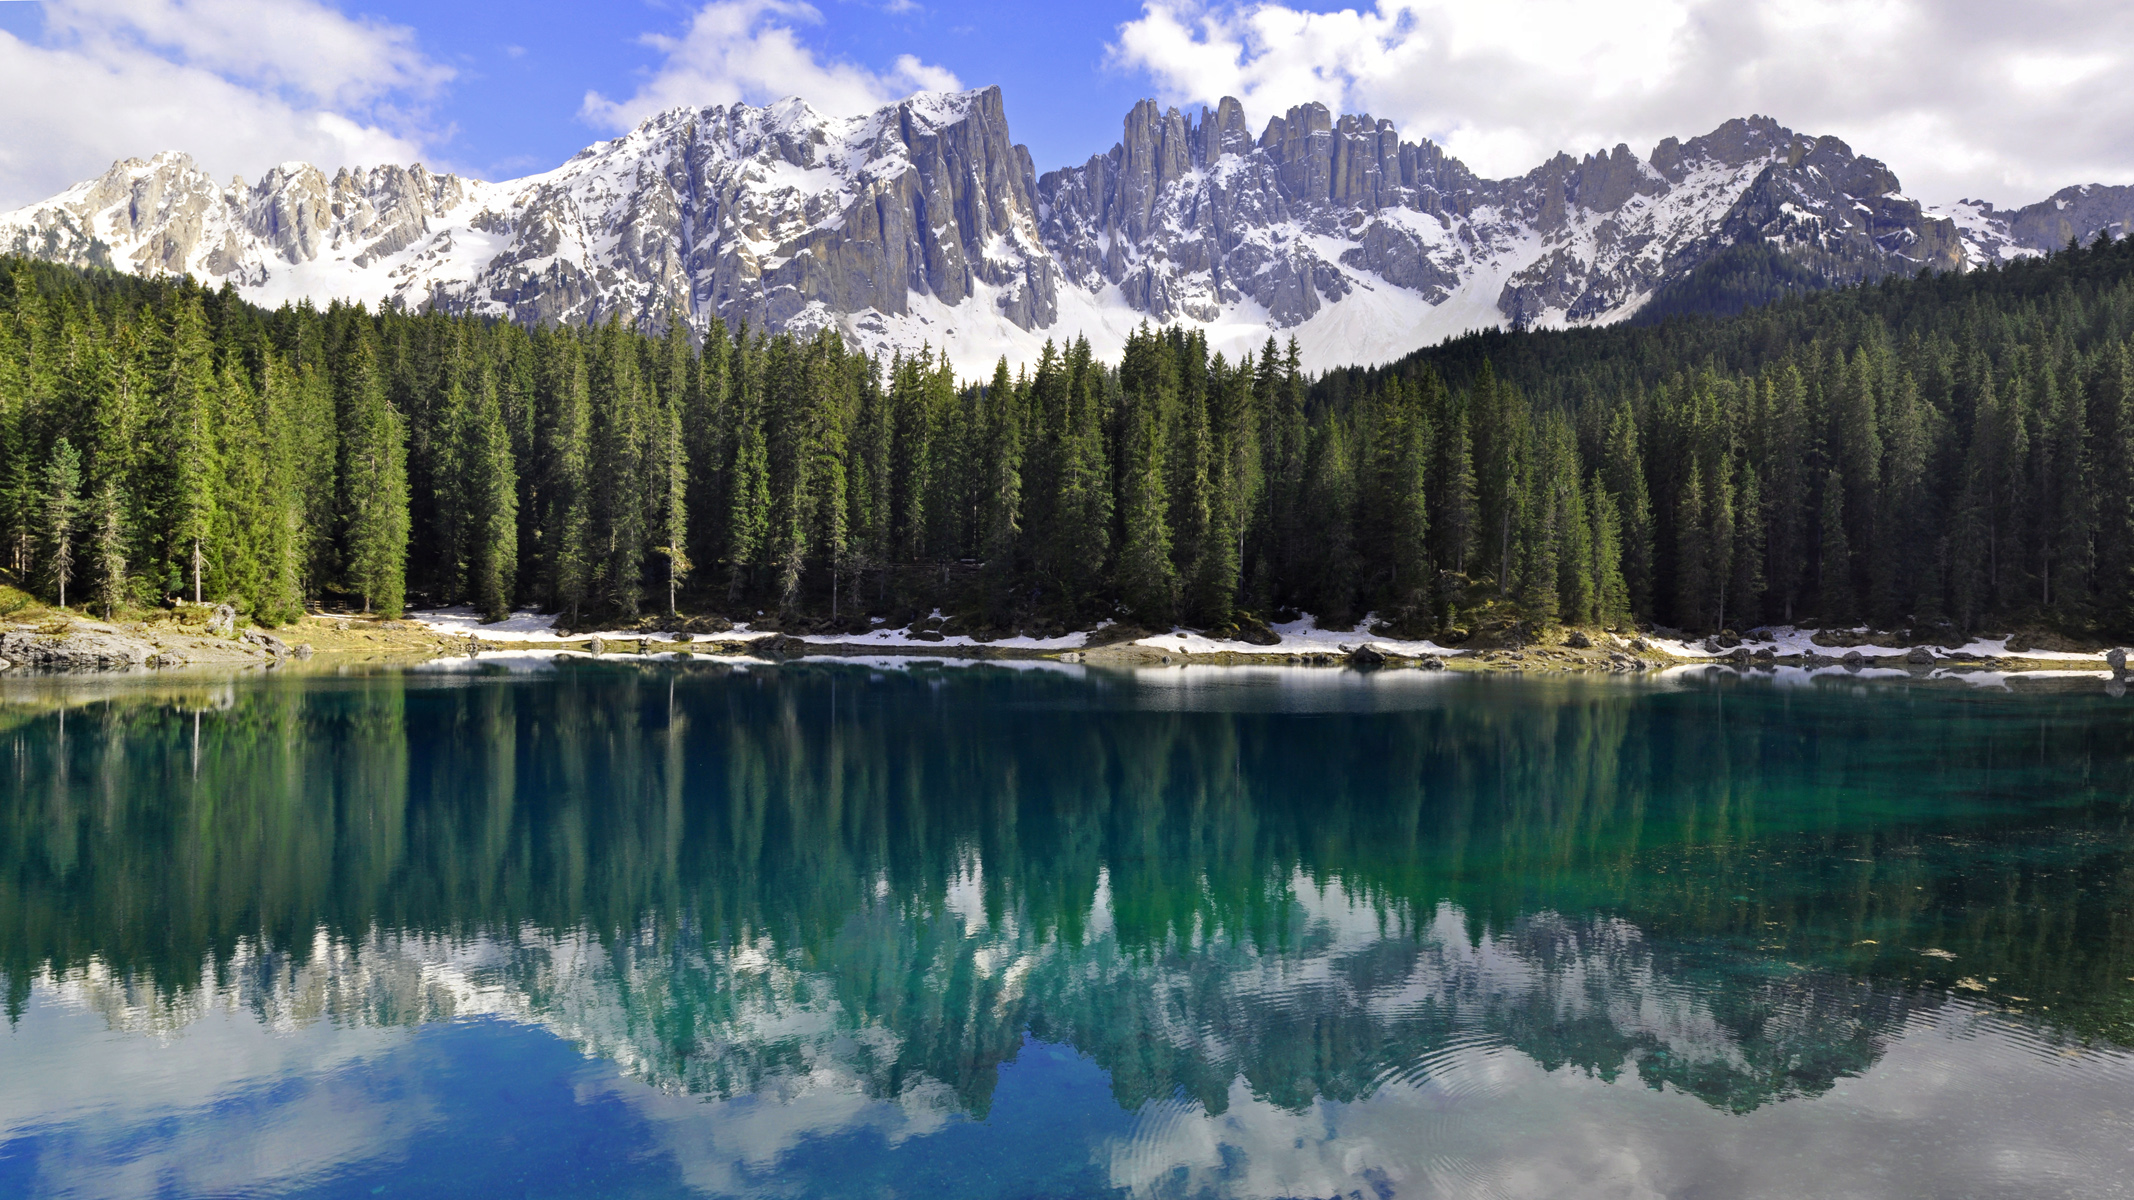 Click for HD wallpaper of the Dolomites!